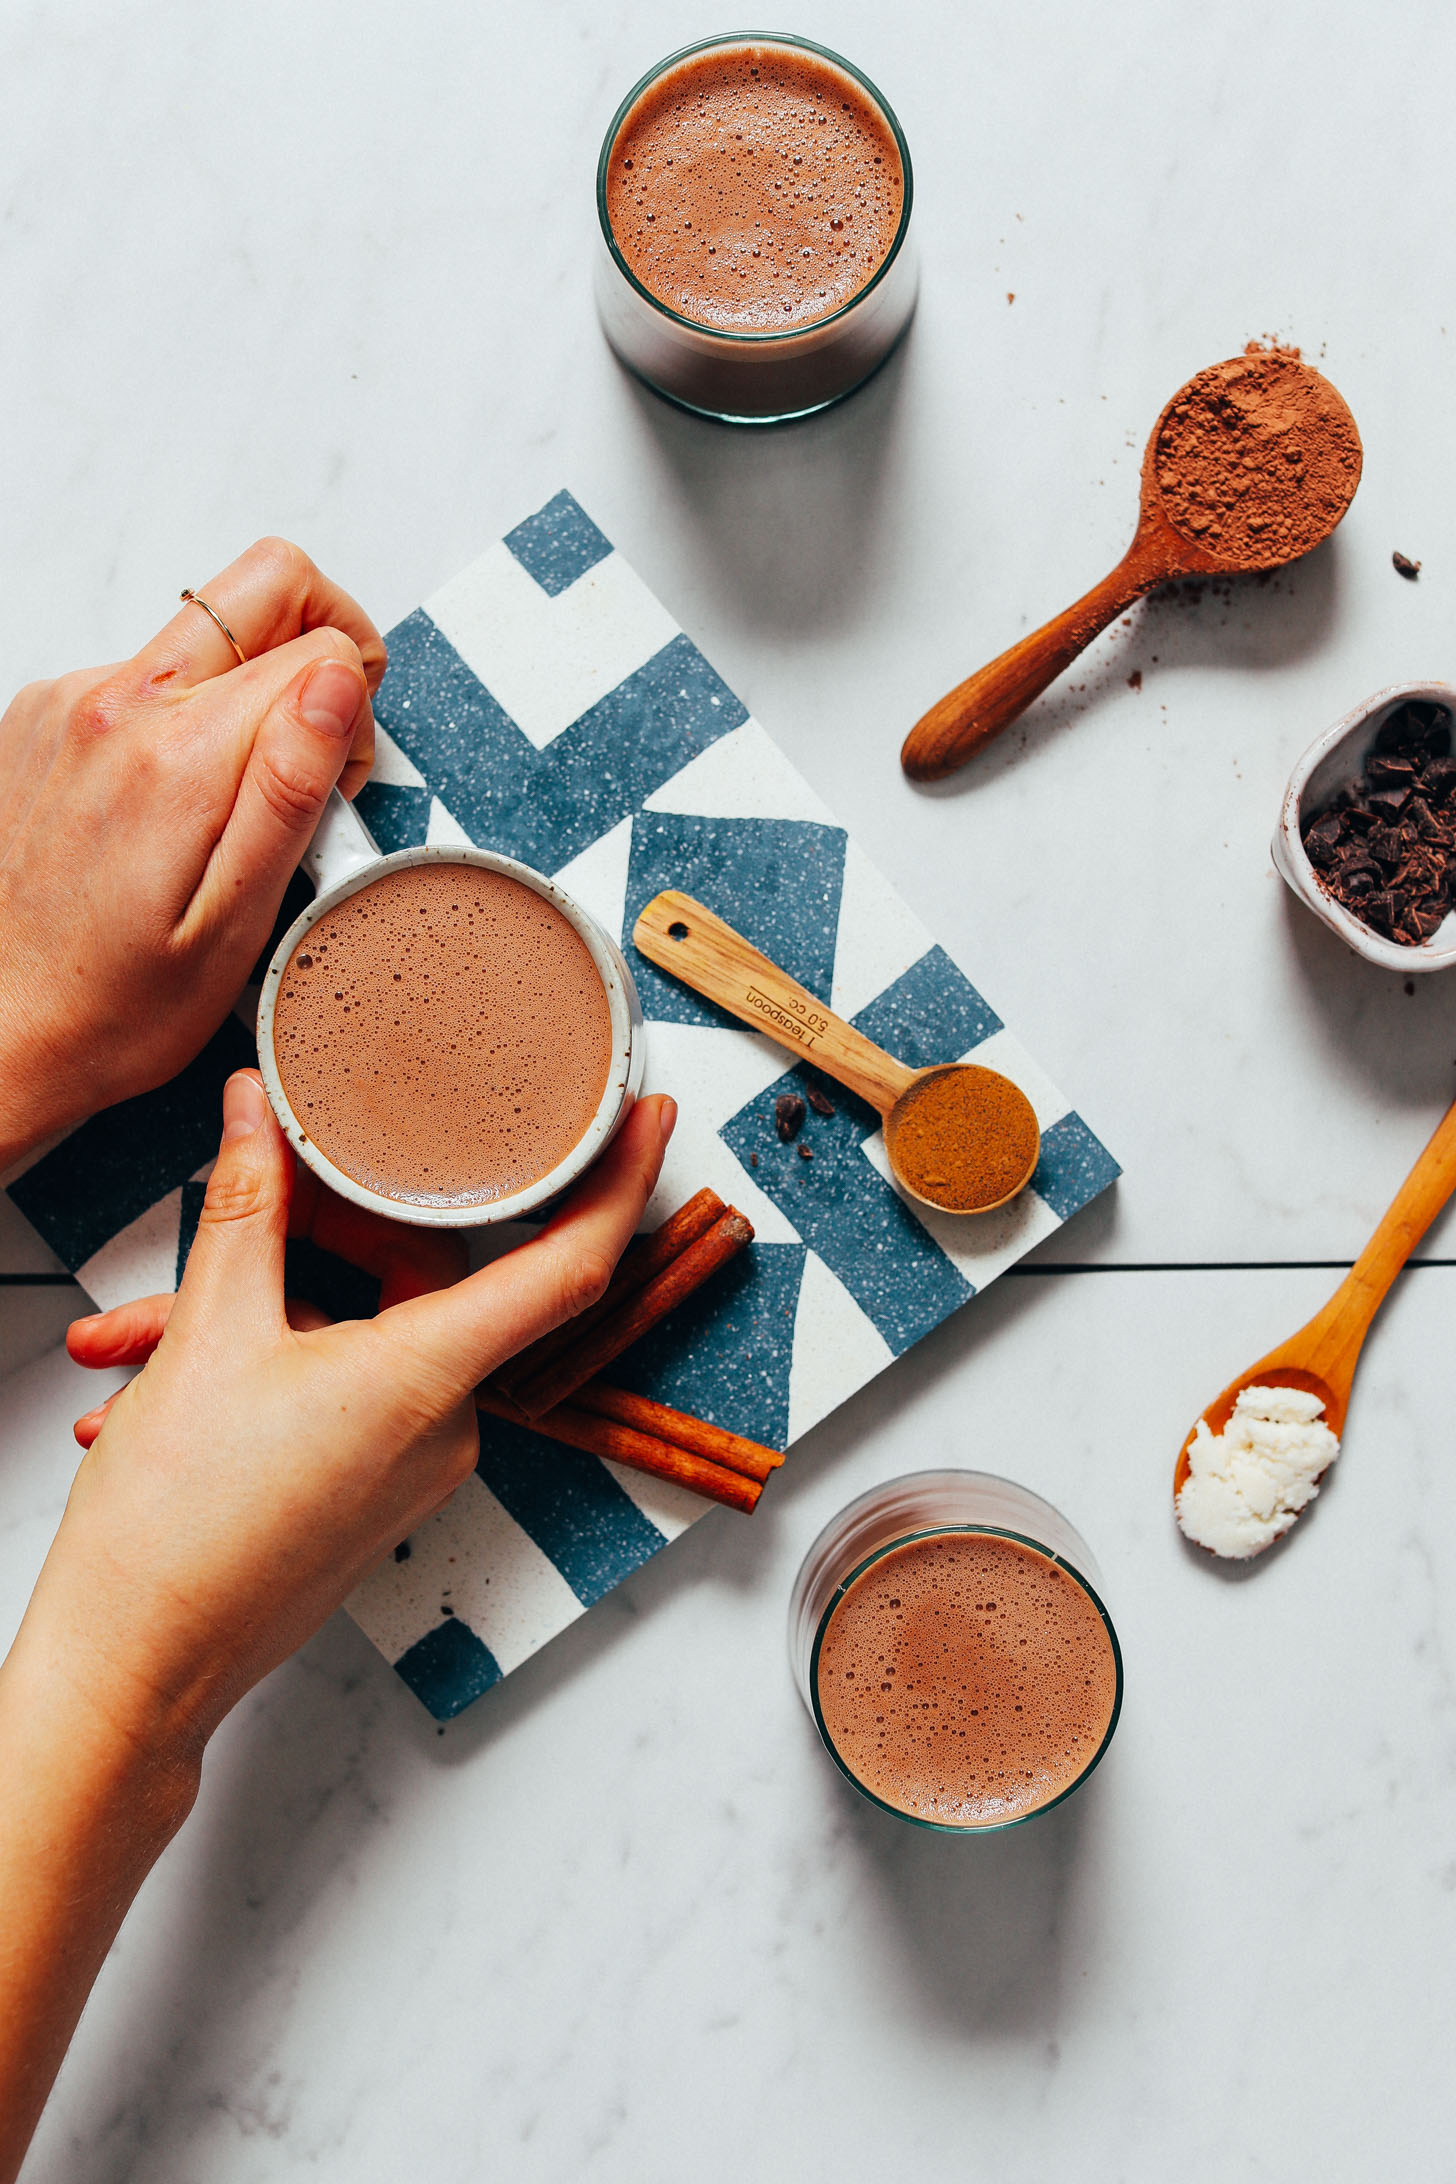 Holding a mug of Adaptogenic Hot Chocolate made from our mix recipe